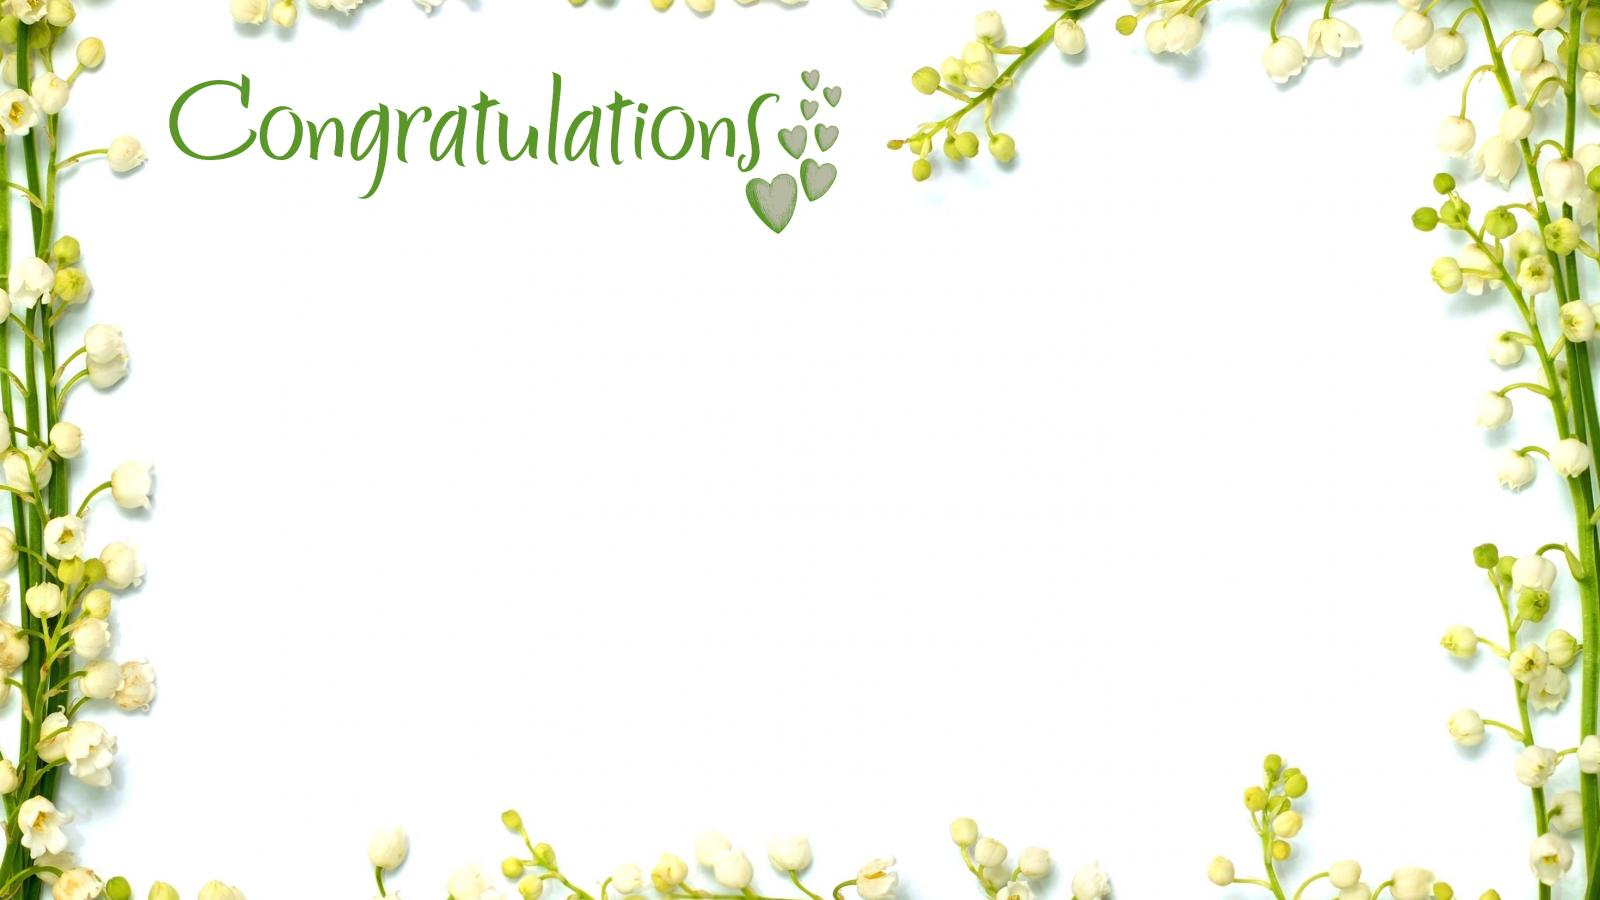 Congratulations Picture Frames With Green Floral Border